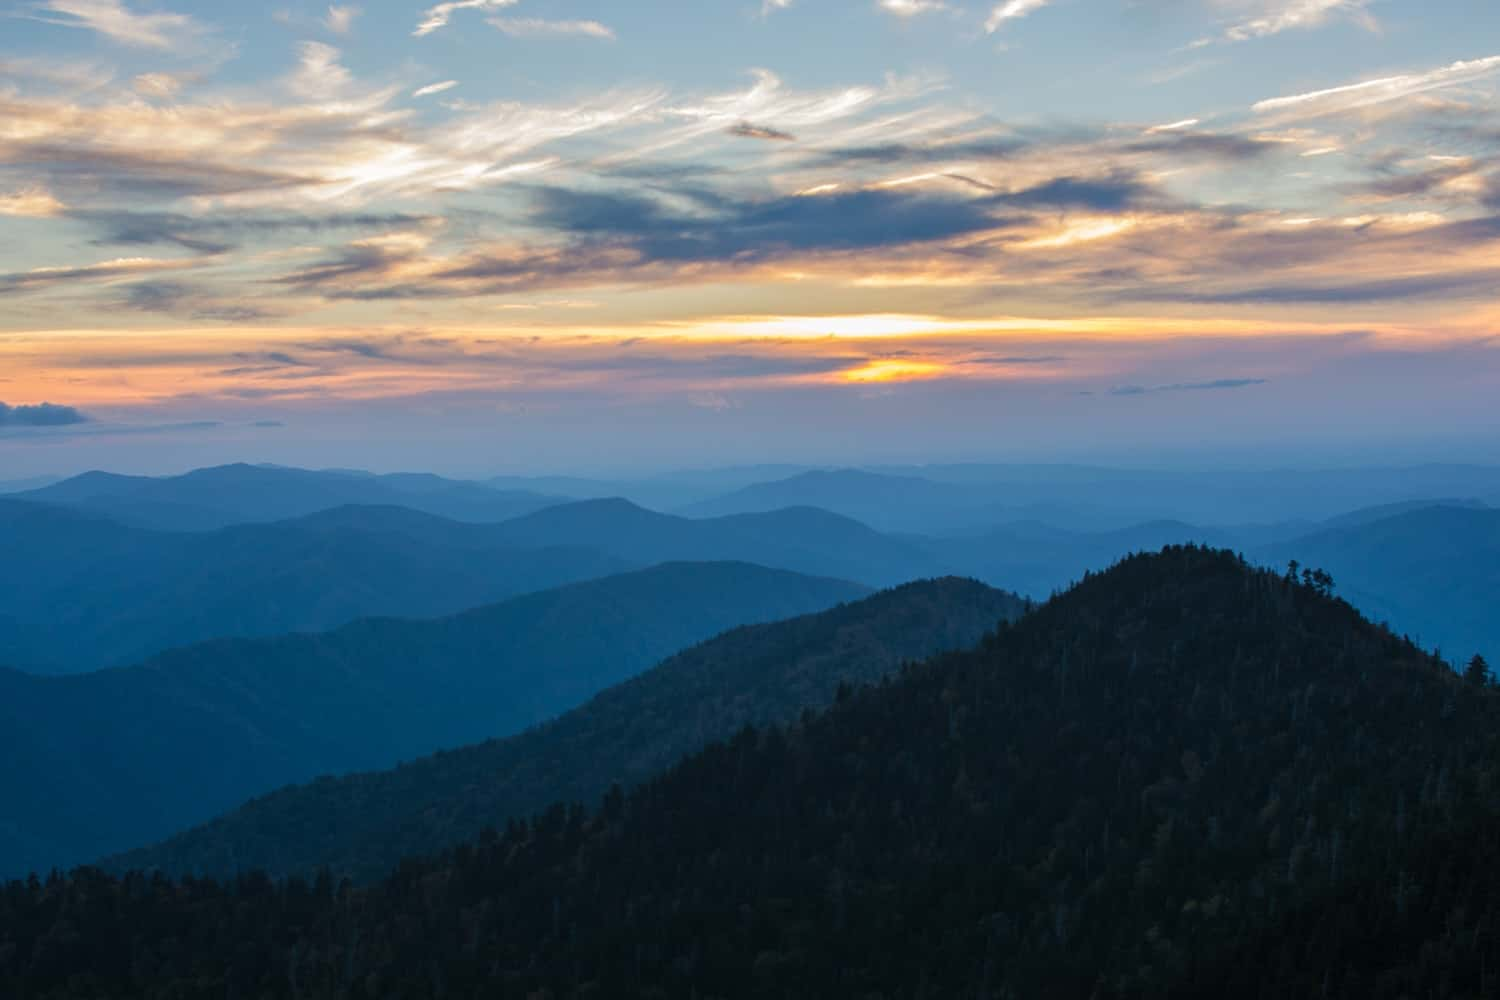 Best Things to do in the Great Smoky Mountains - Bucket List Project